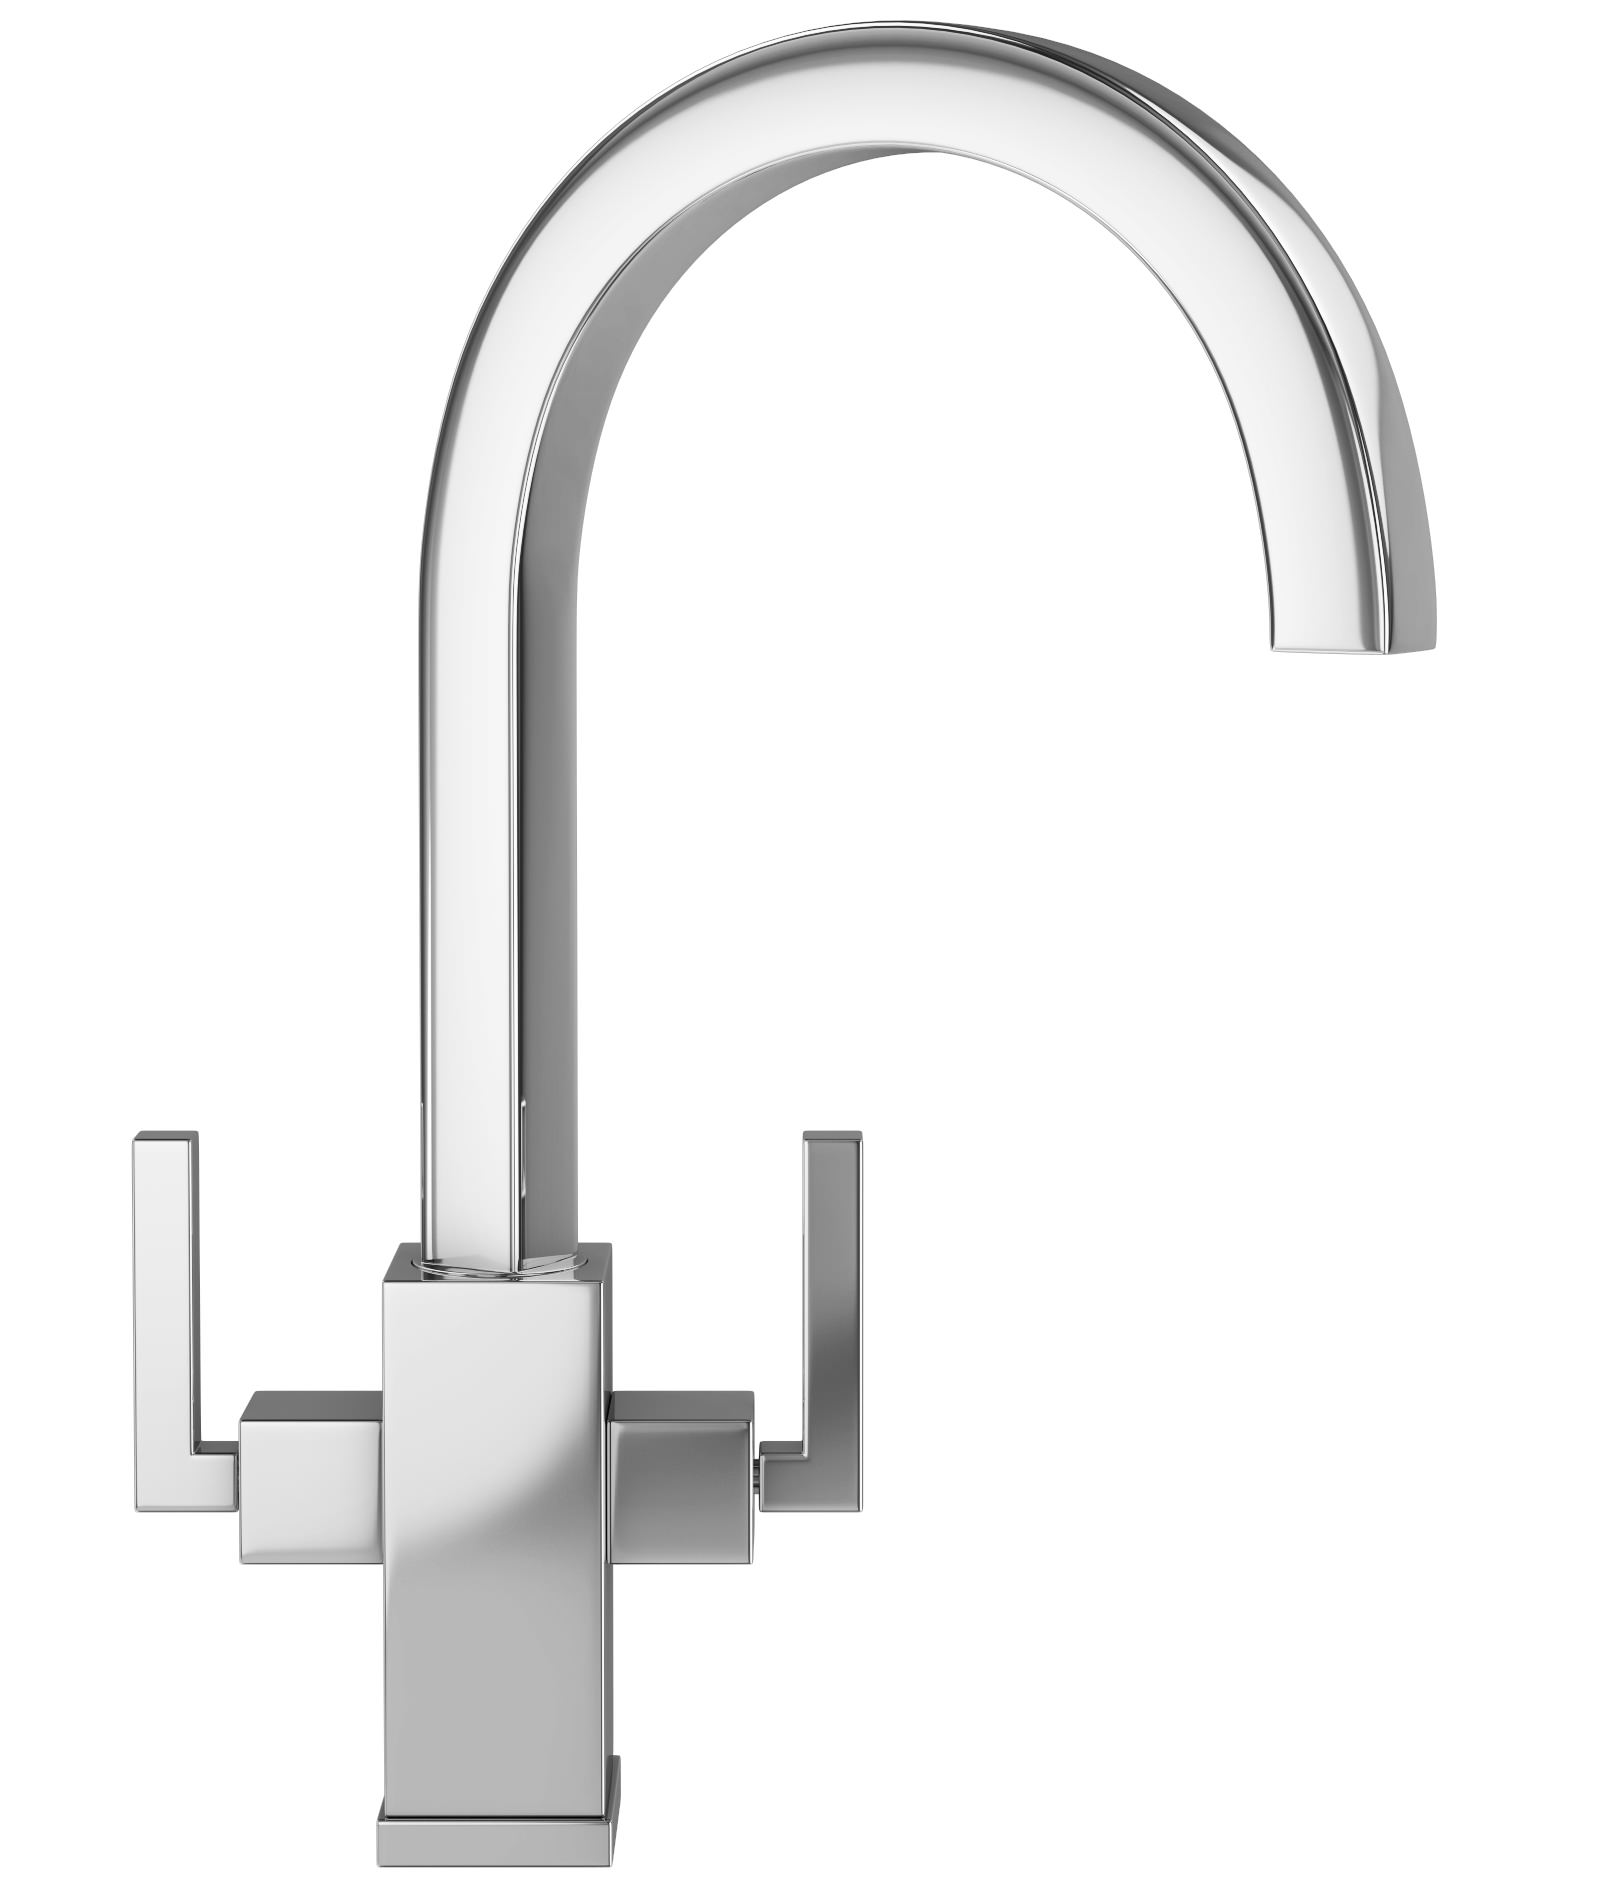 Franke Planar Kitchen Sink Mixer Tap Chrome - More Finish